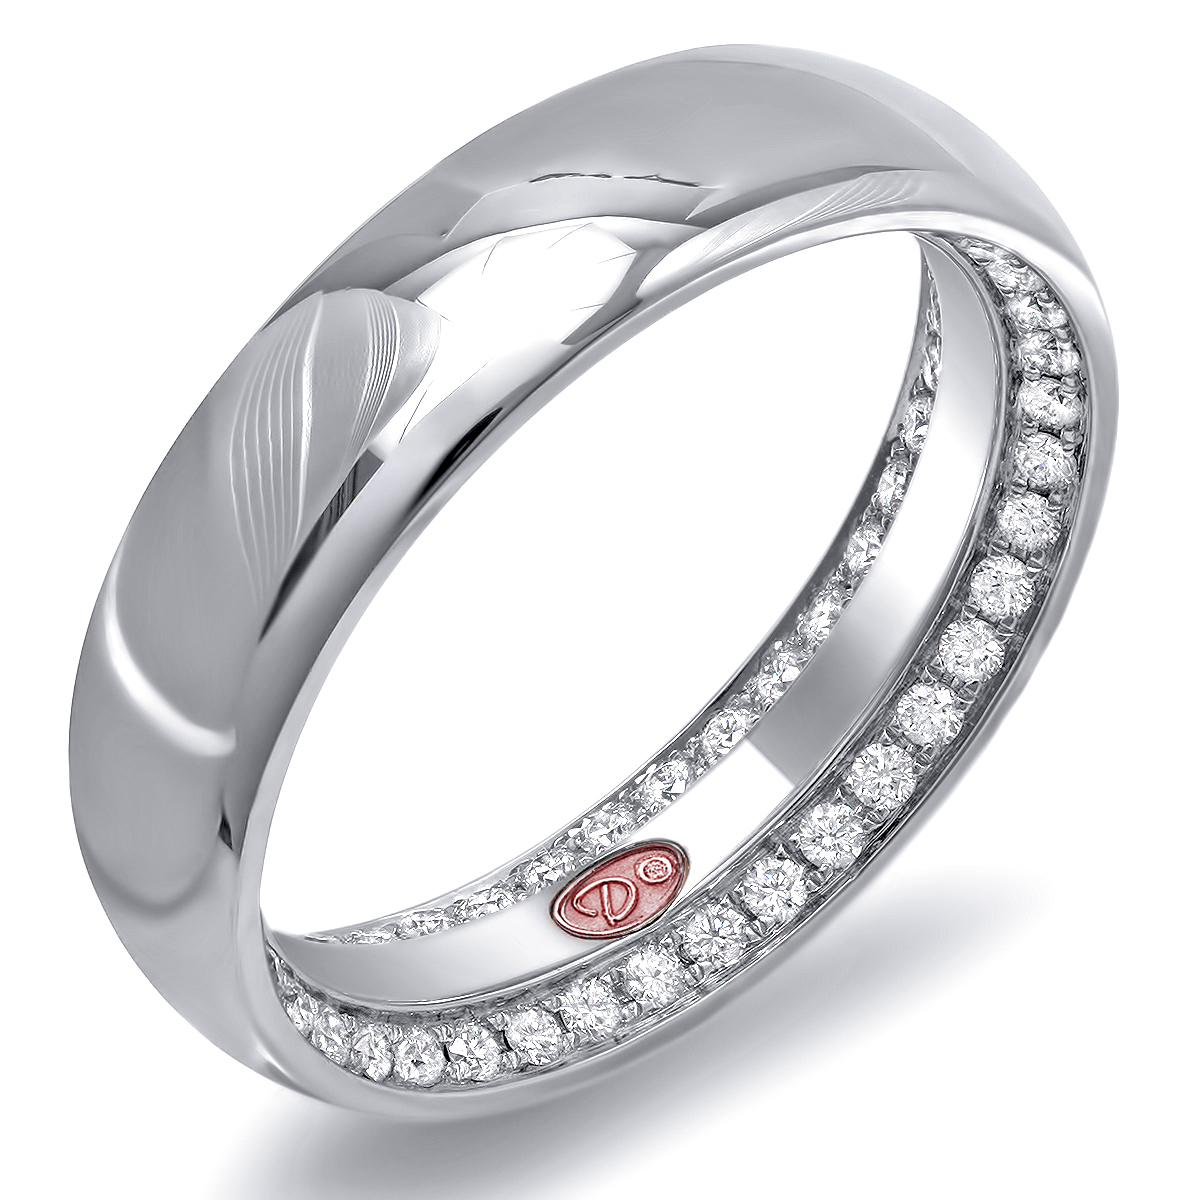 designer engagement jewelry and rings demarco bridal jewelry - Designer Wedding Rings